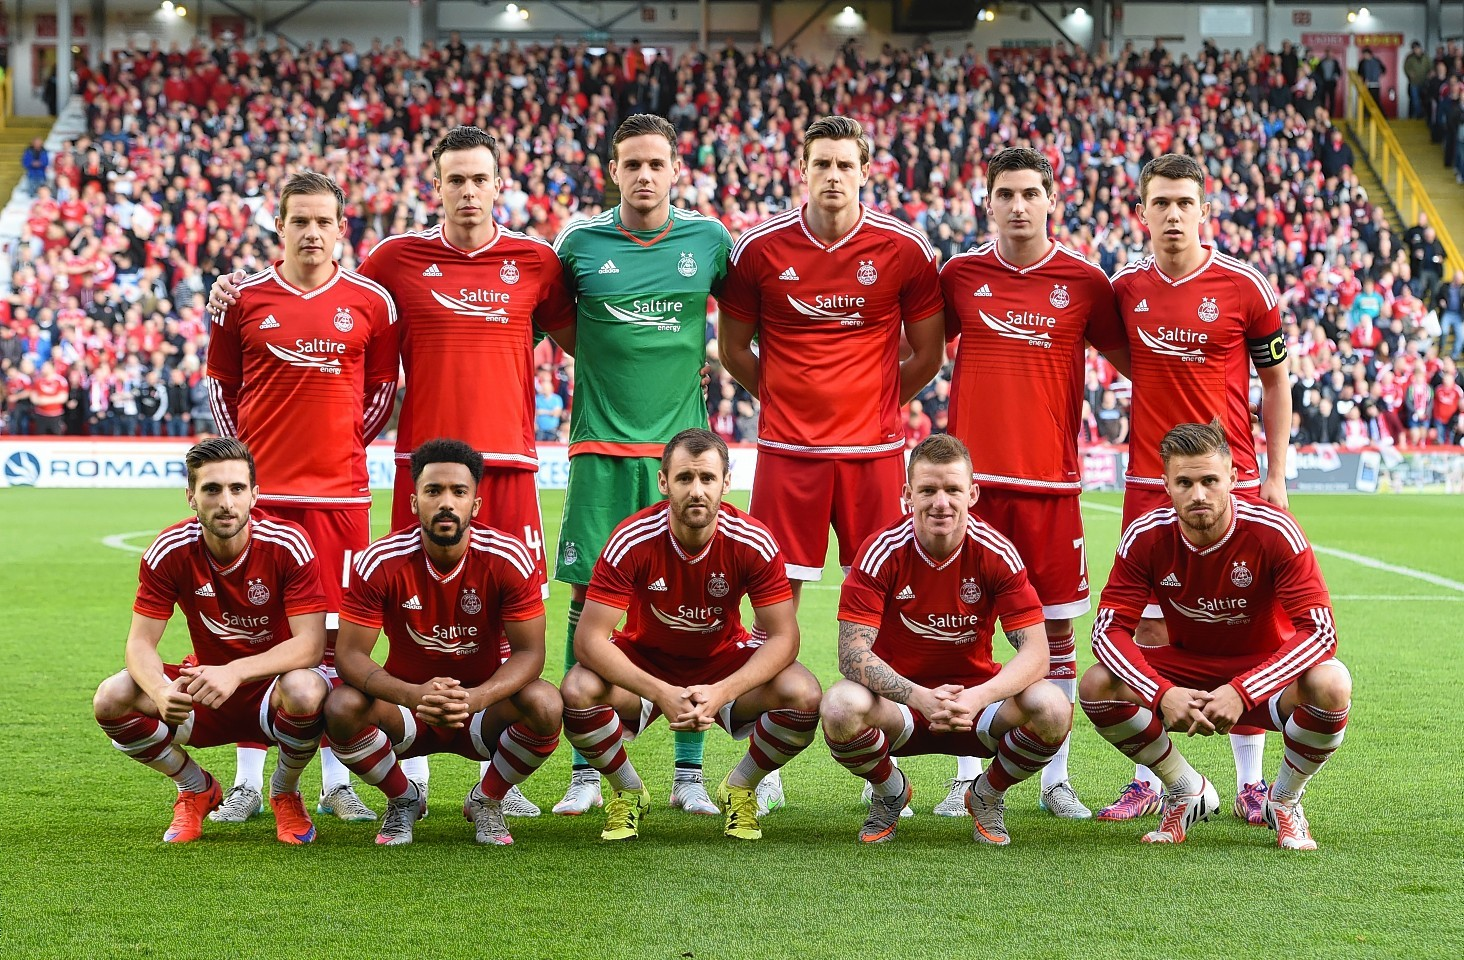 The Dons line up ahead of the match